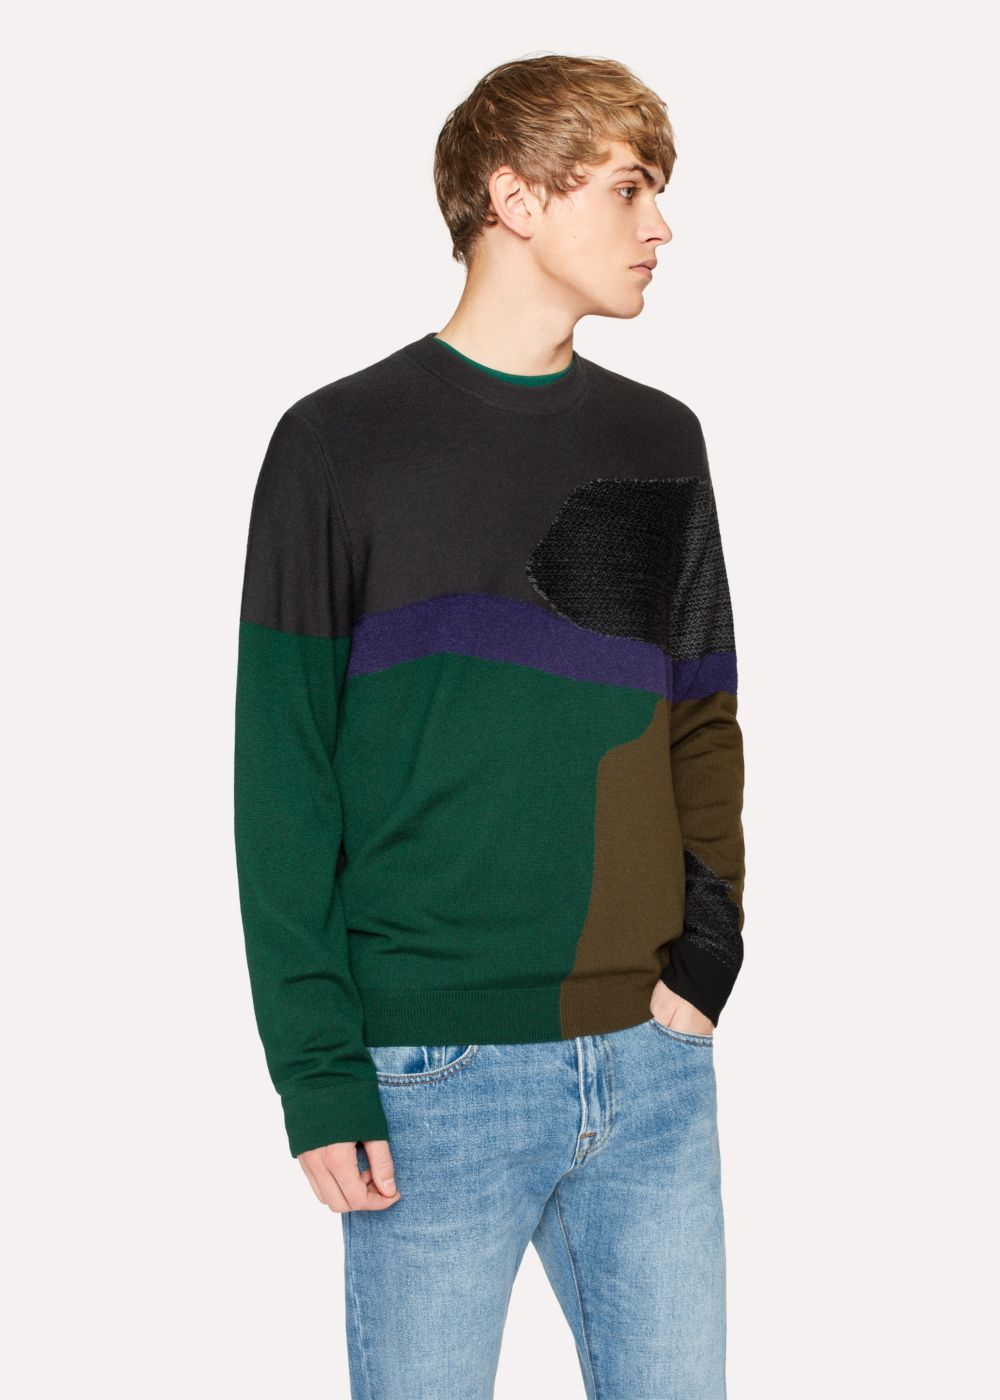 Paul Smith Men's Grey Colour-Block Textured-Knit Sweater